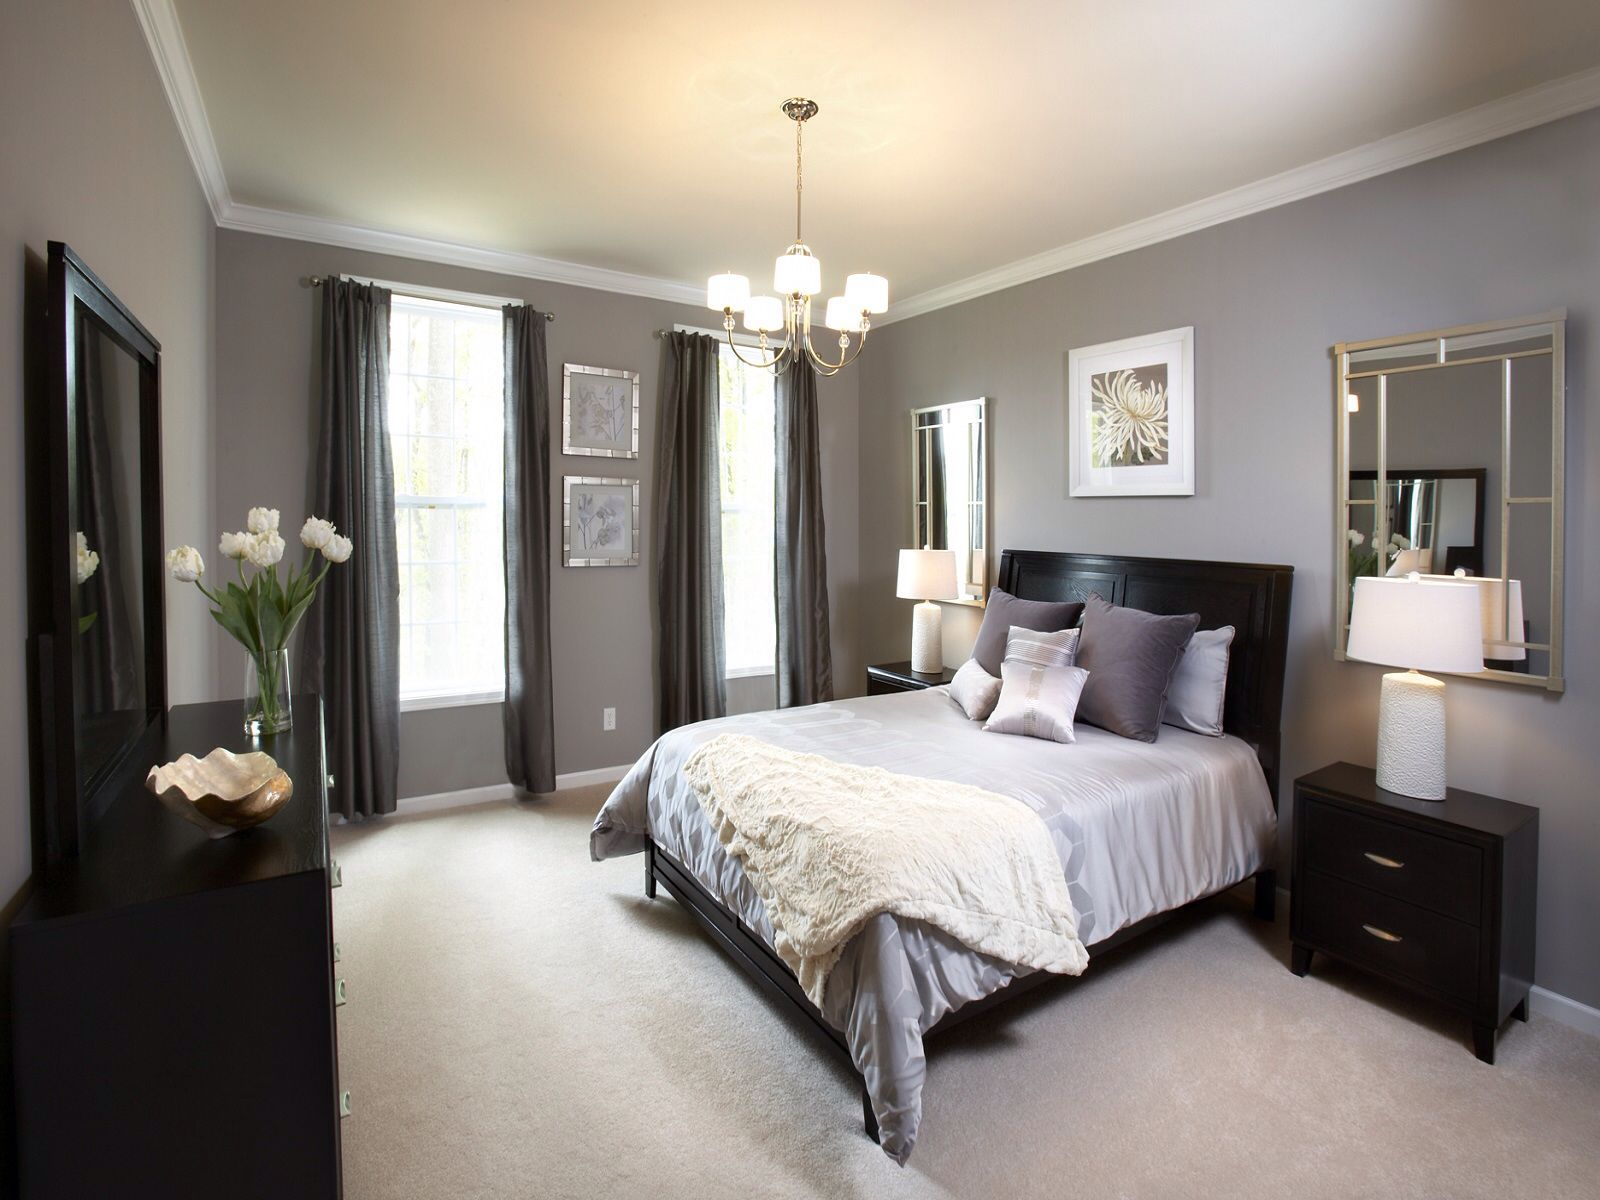 Grey Walls And Curtains With Dark Bed And Tables Gray Master Bedroom Master Bedrooms Decor Remodel Bedroom